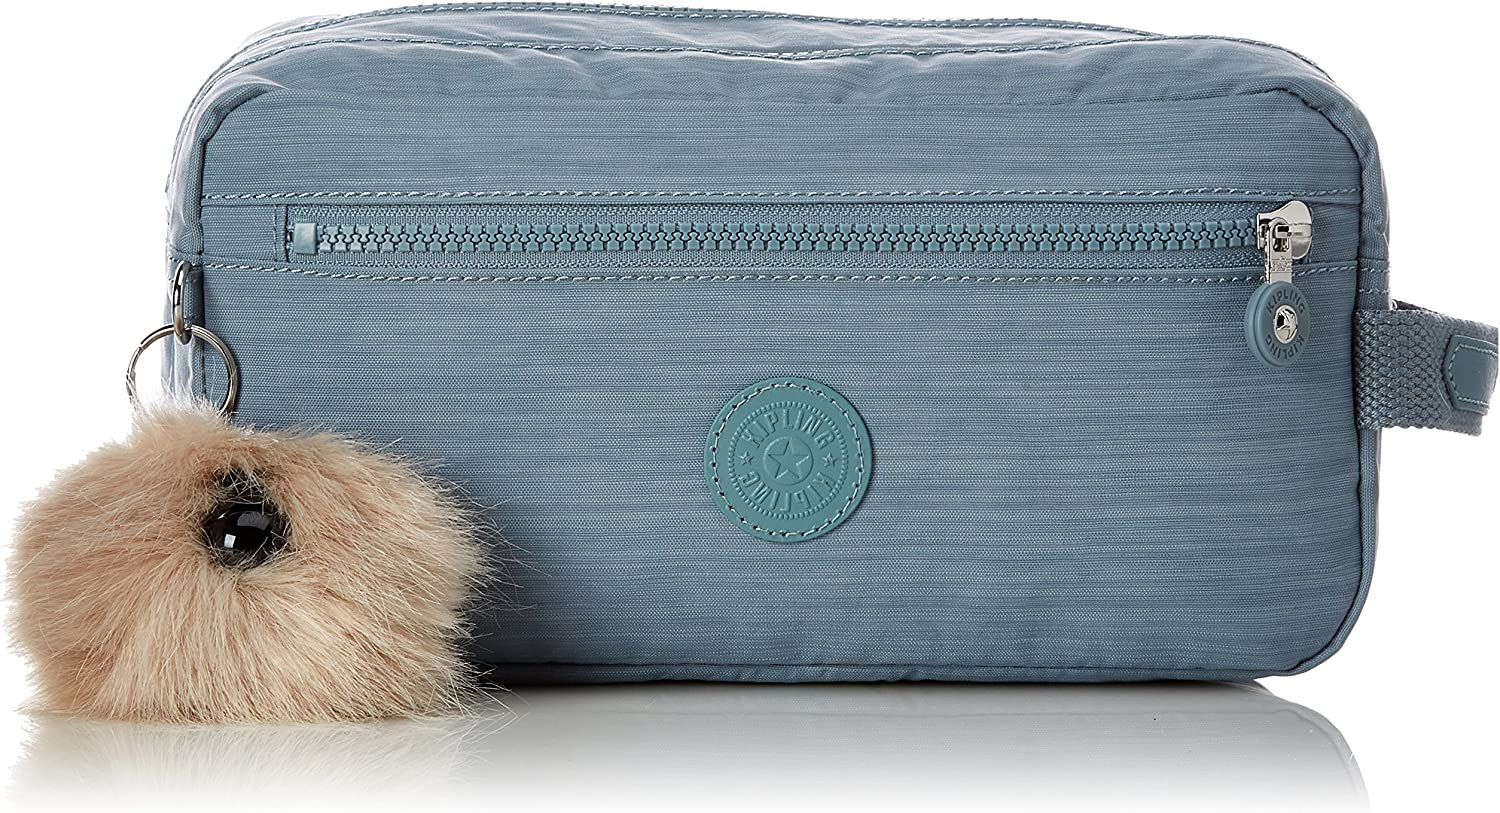 Kipling AGOT Toiletry Bag, 26 cm, 3 liters, Blue Dazz Soft Aloe